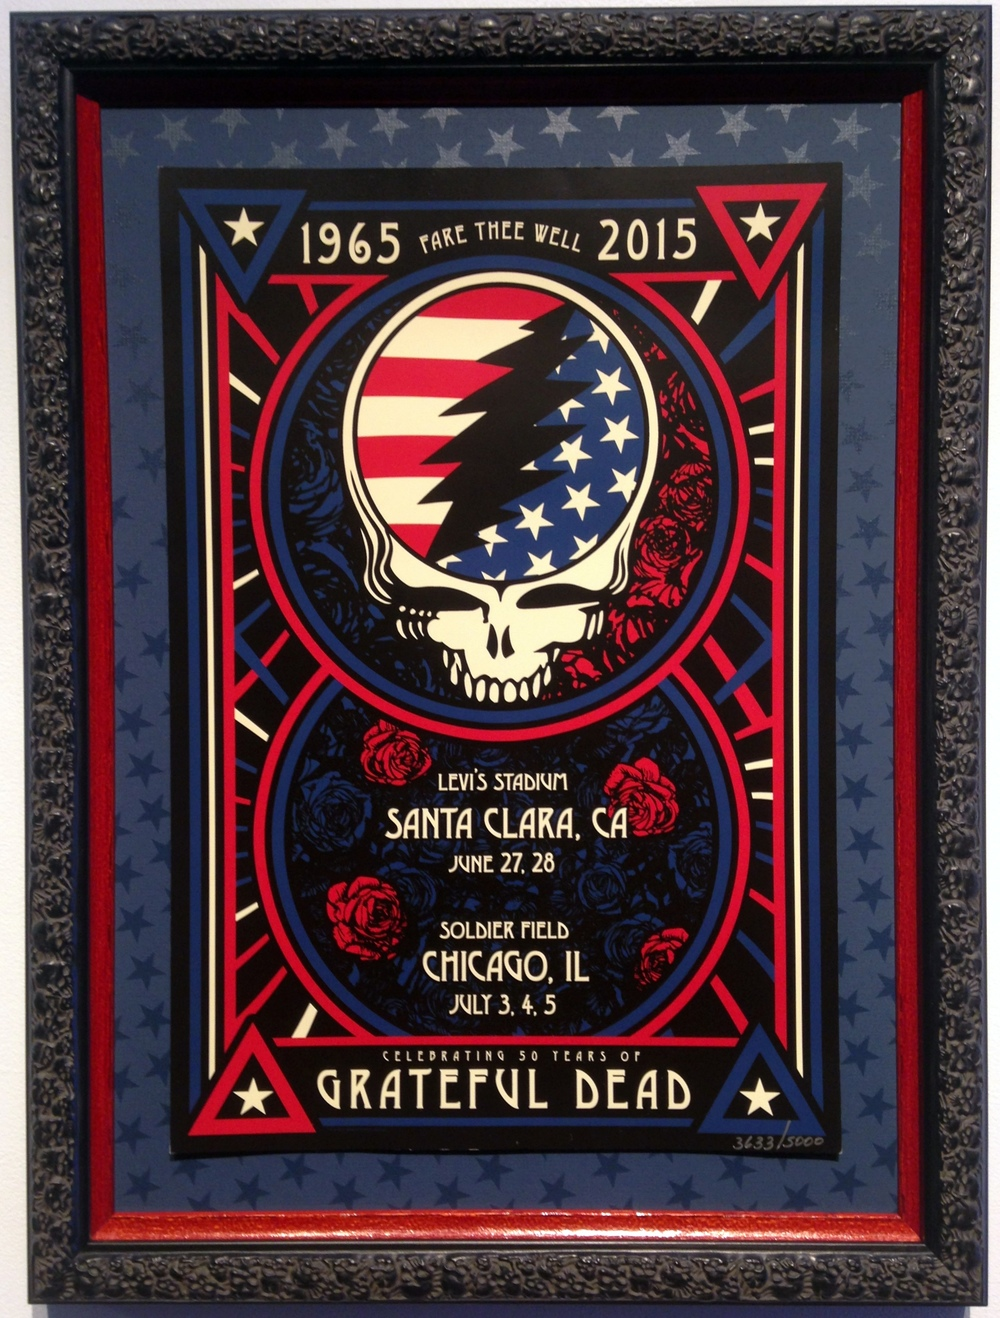 Grateful Dead Fare Thee Well, stars, skulls